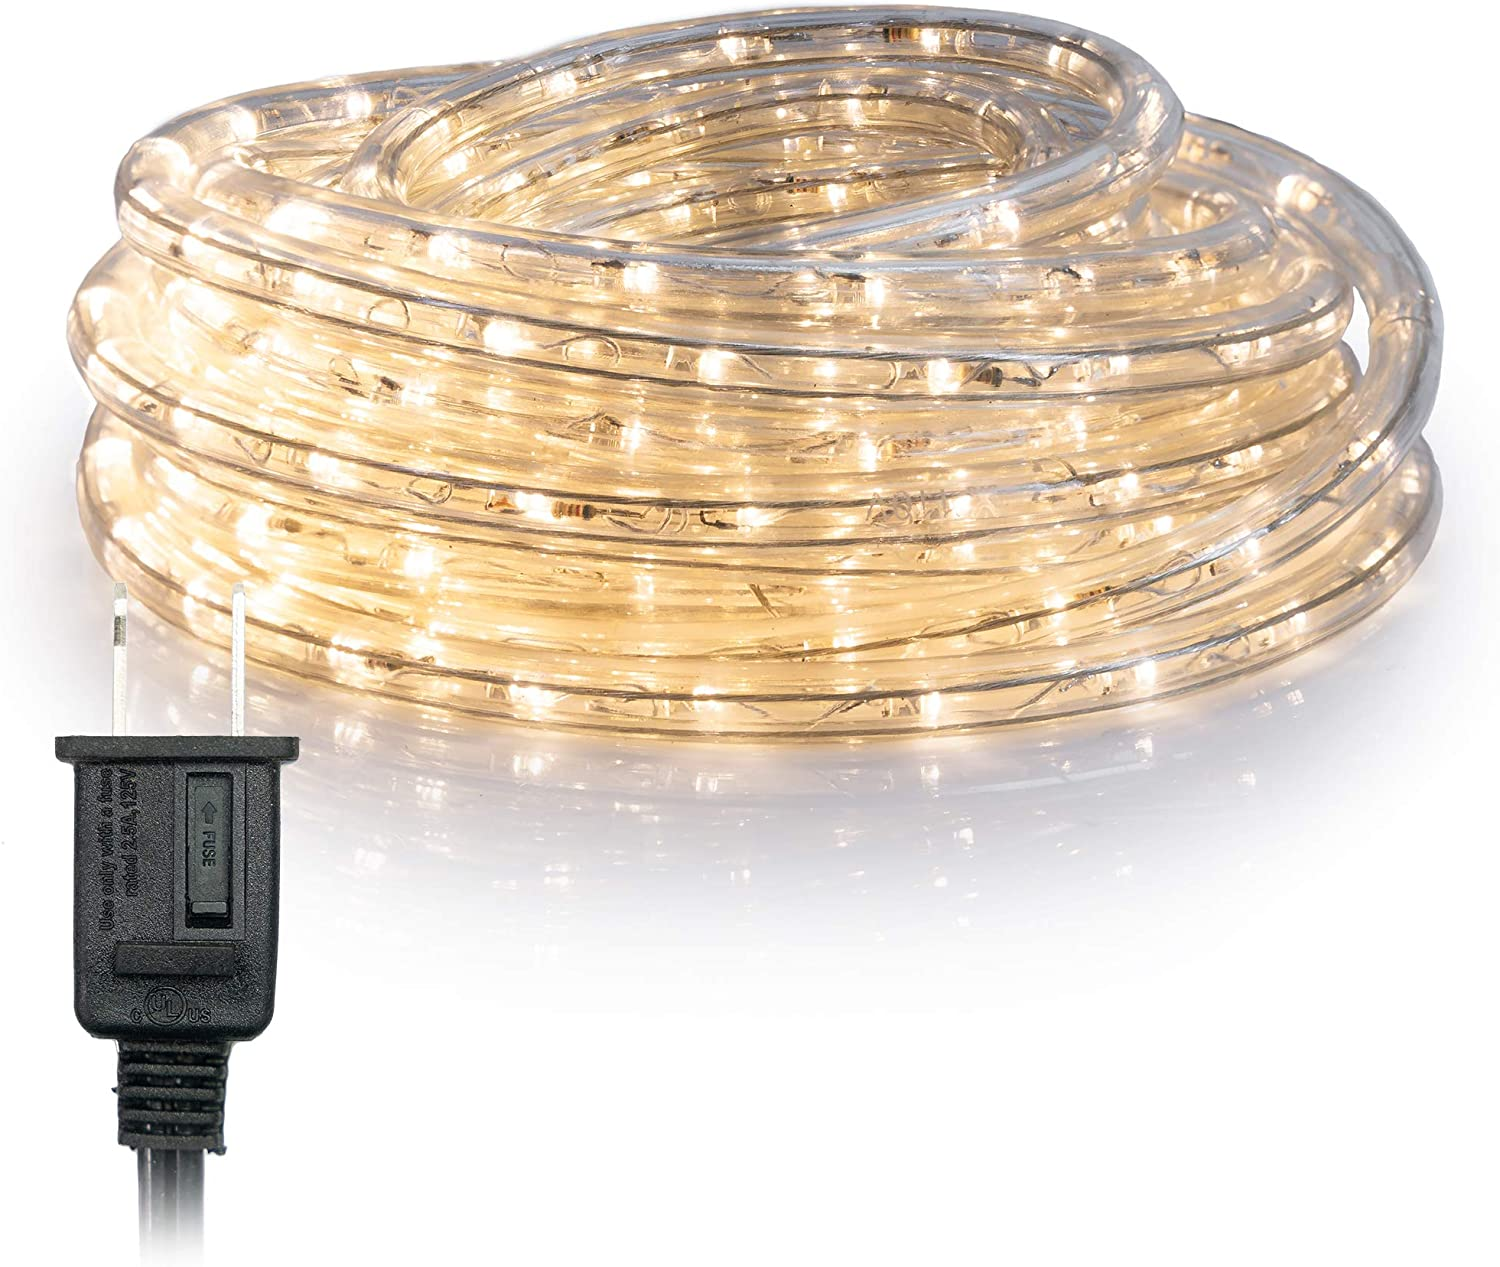 WYZworks 50 feet Warm White LED Rope Lights for Accent Holiday Christmas Party Decoration Lighting | ETL Certified - 10, 25, 50, 100, 150, 300 ft